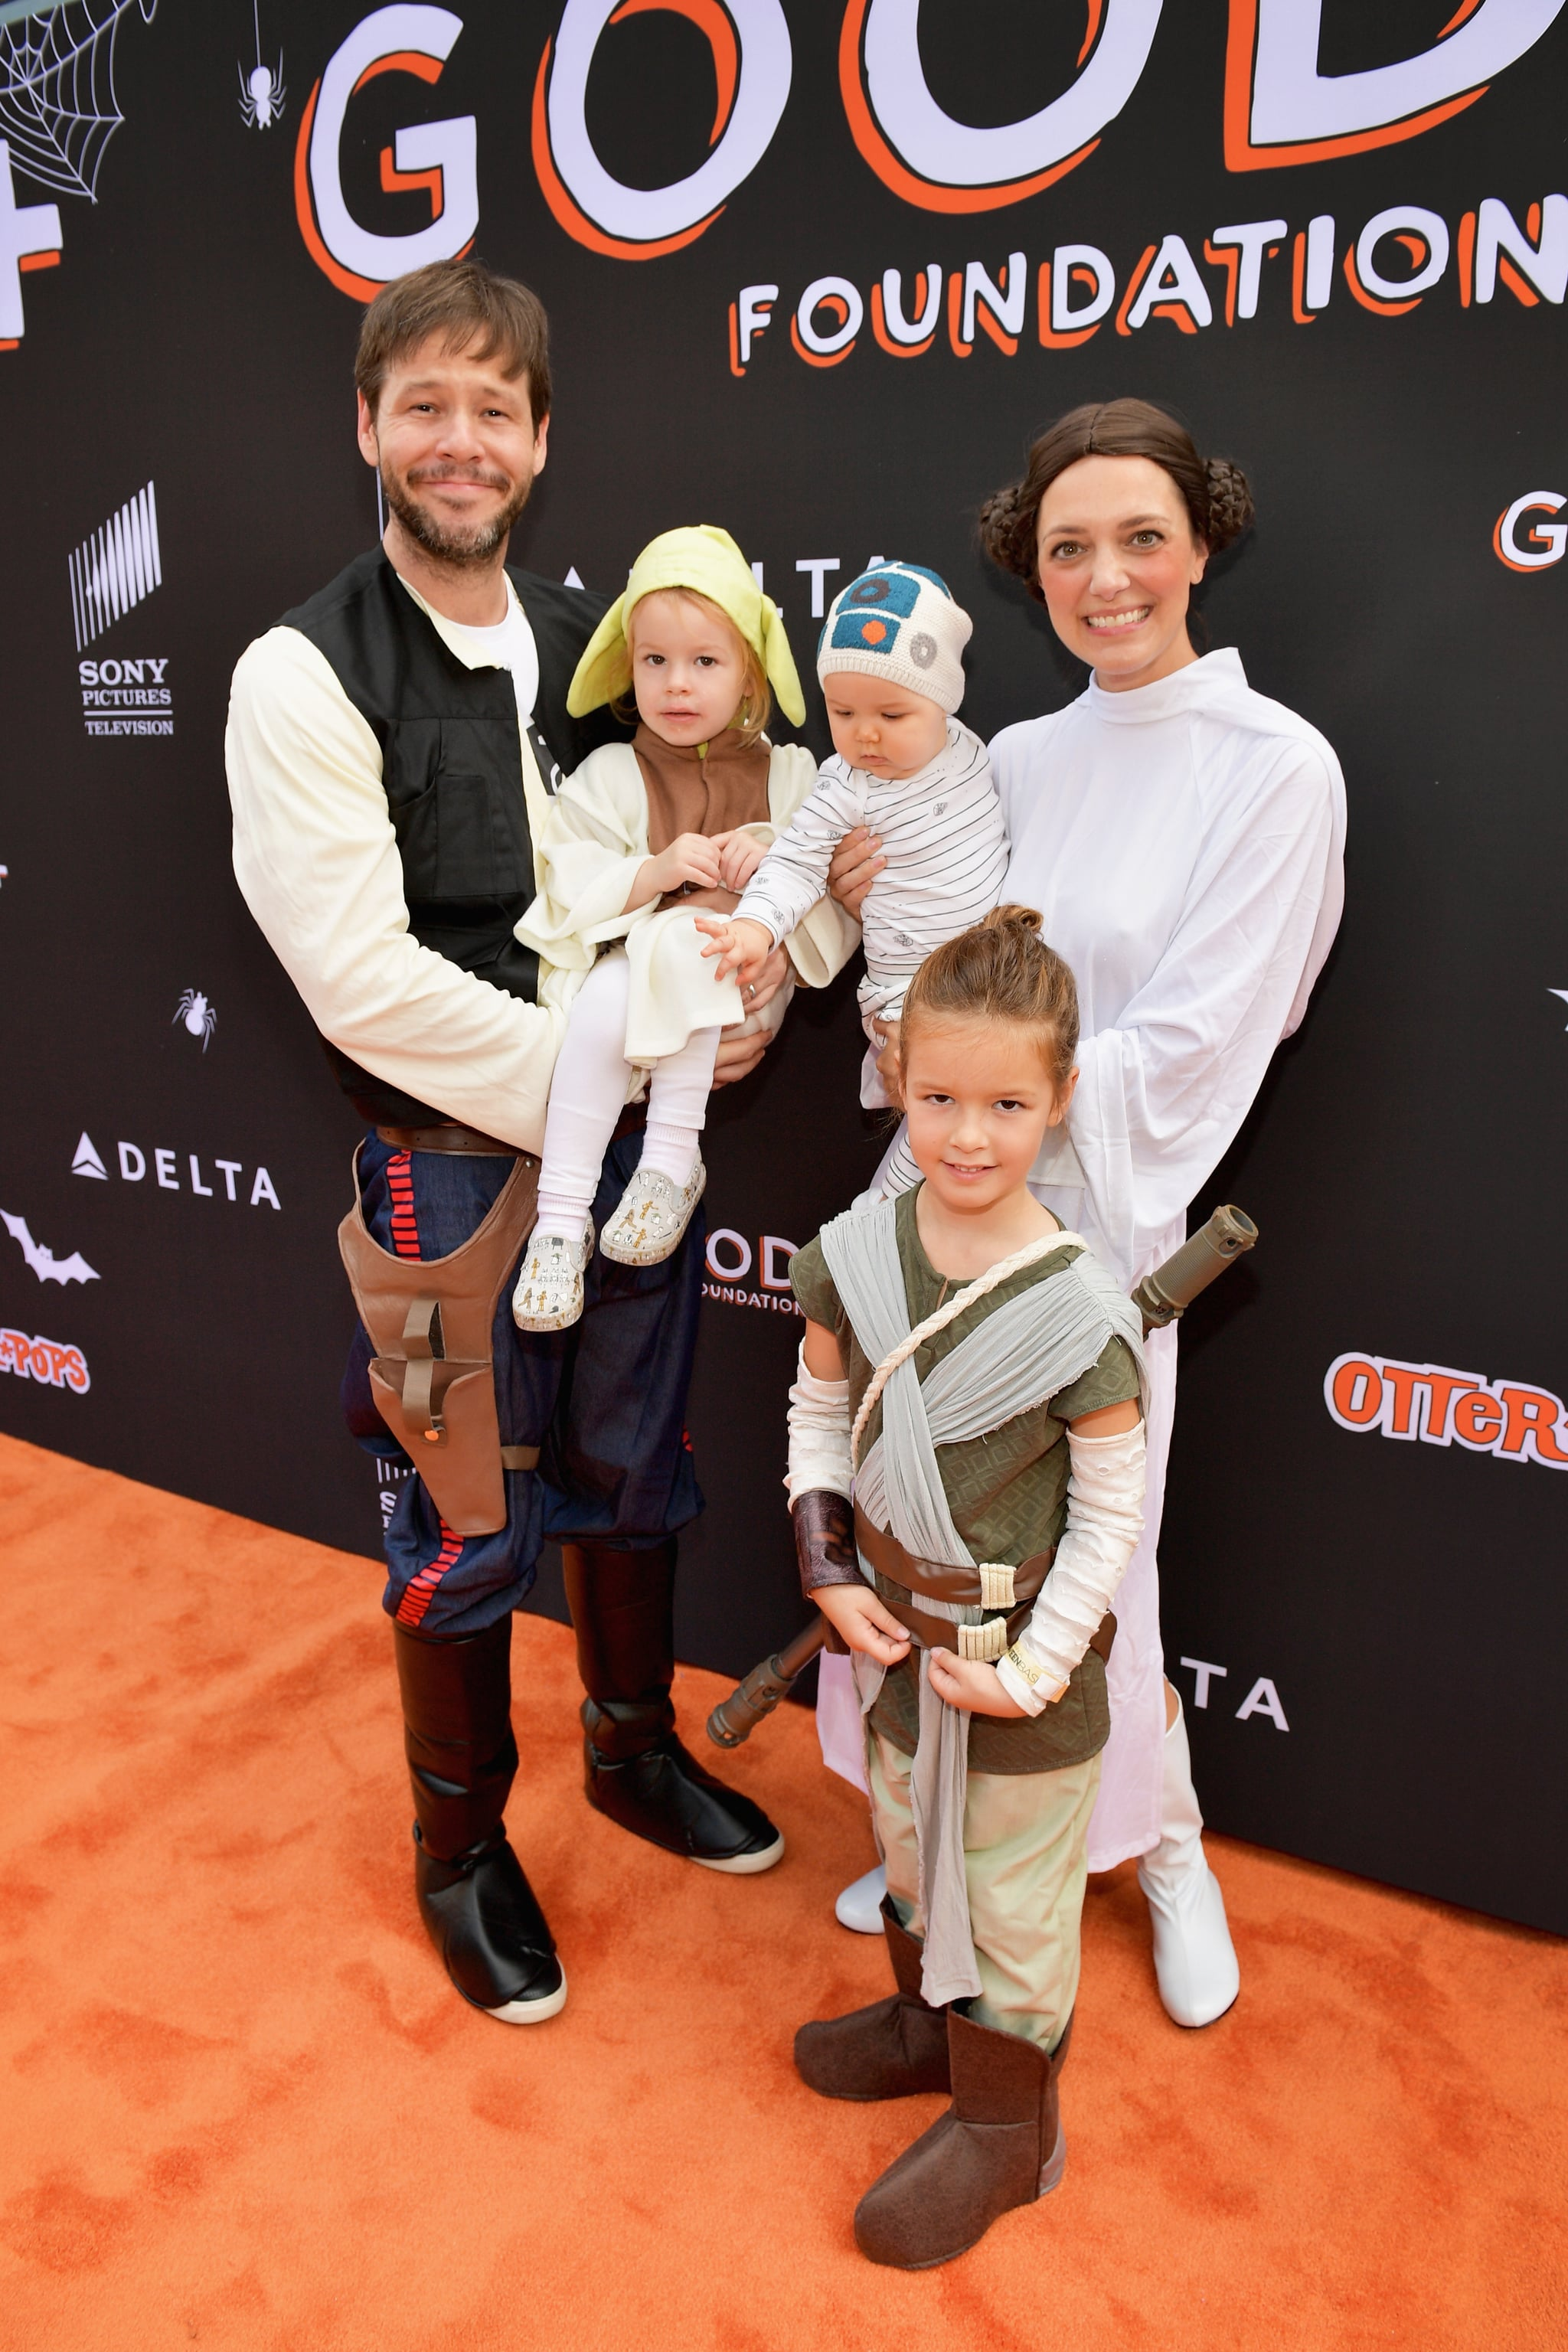 CULVER CITY, CA - OCTOBER 28: (L-R) Ike Barinholtz, Erica Hanson, Payton June Barinholtz and Foster Barinholtz attends the 2018 GOOD+ Foundation's 3rd Annual Halloween Bash presented by Delta Air Lines and Otter Pops on October 28, 2018 in Culver City, California.  (Photo by Matt Winkelmeyer/Getty Images for Good+ Foundation)